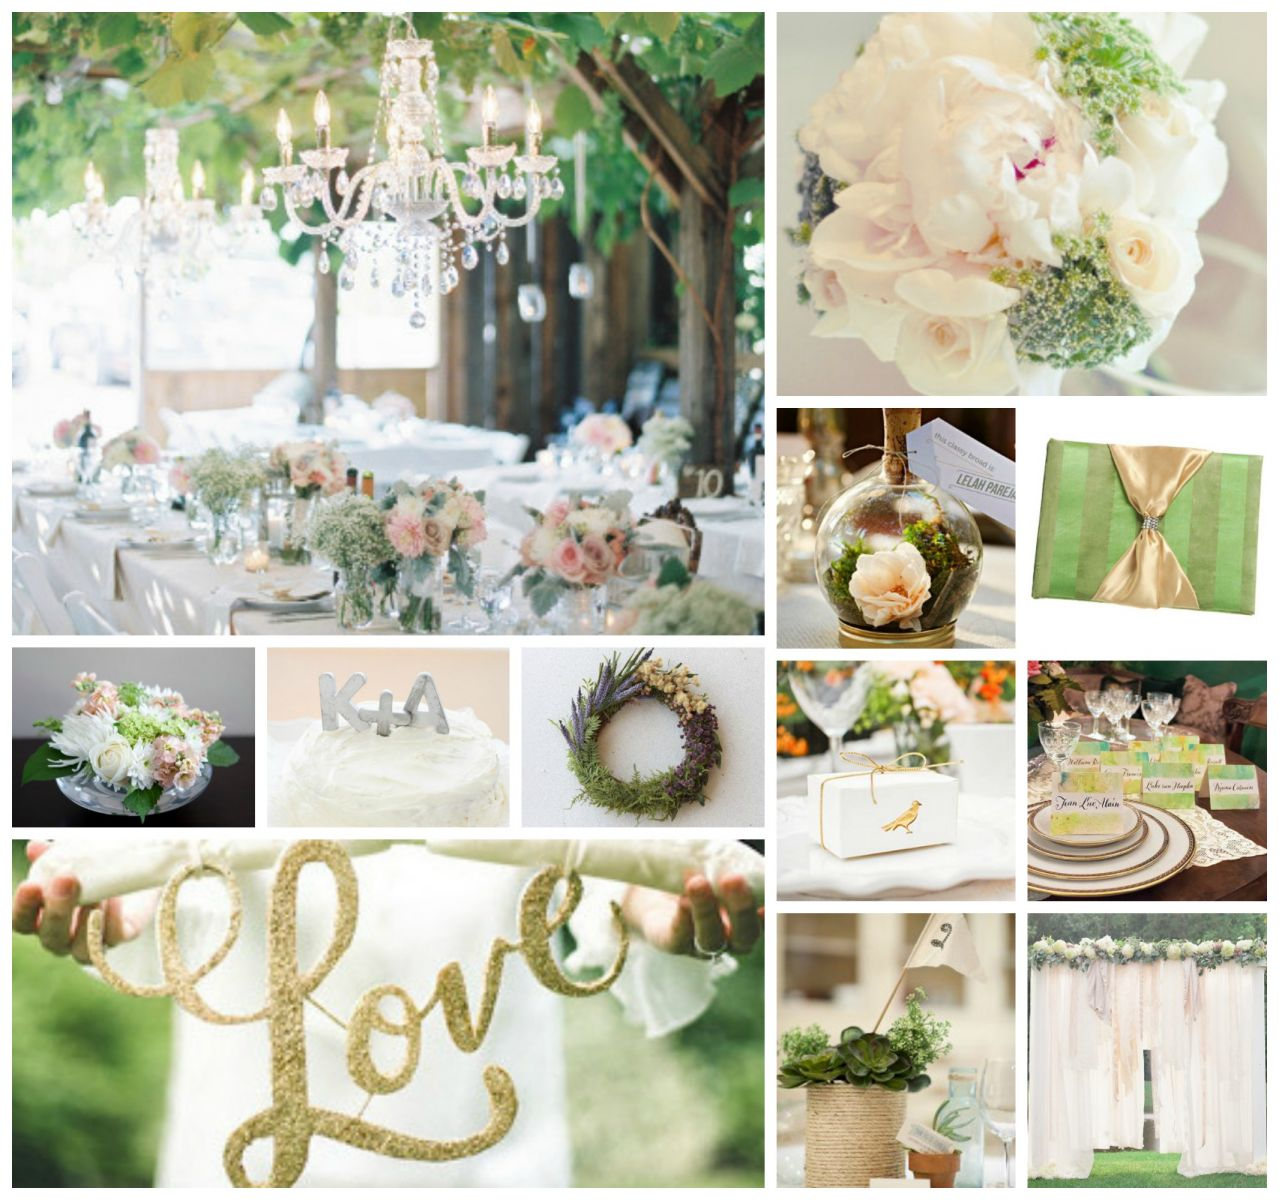 Wedding Ideas By Colour: Wedding Color Schemes: Neutrals